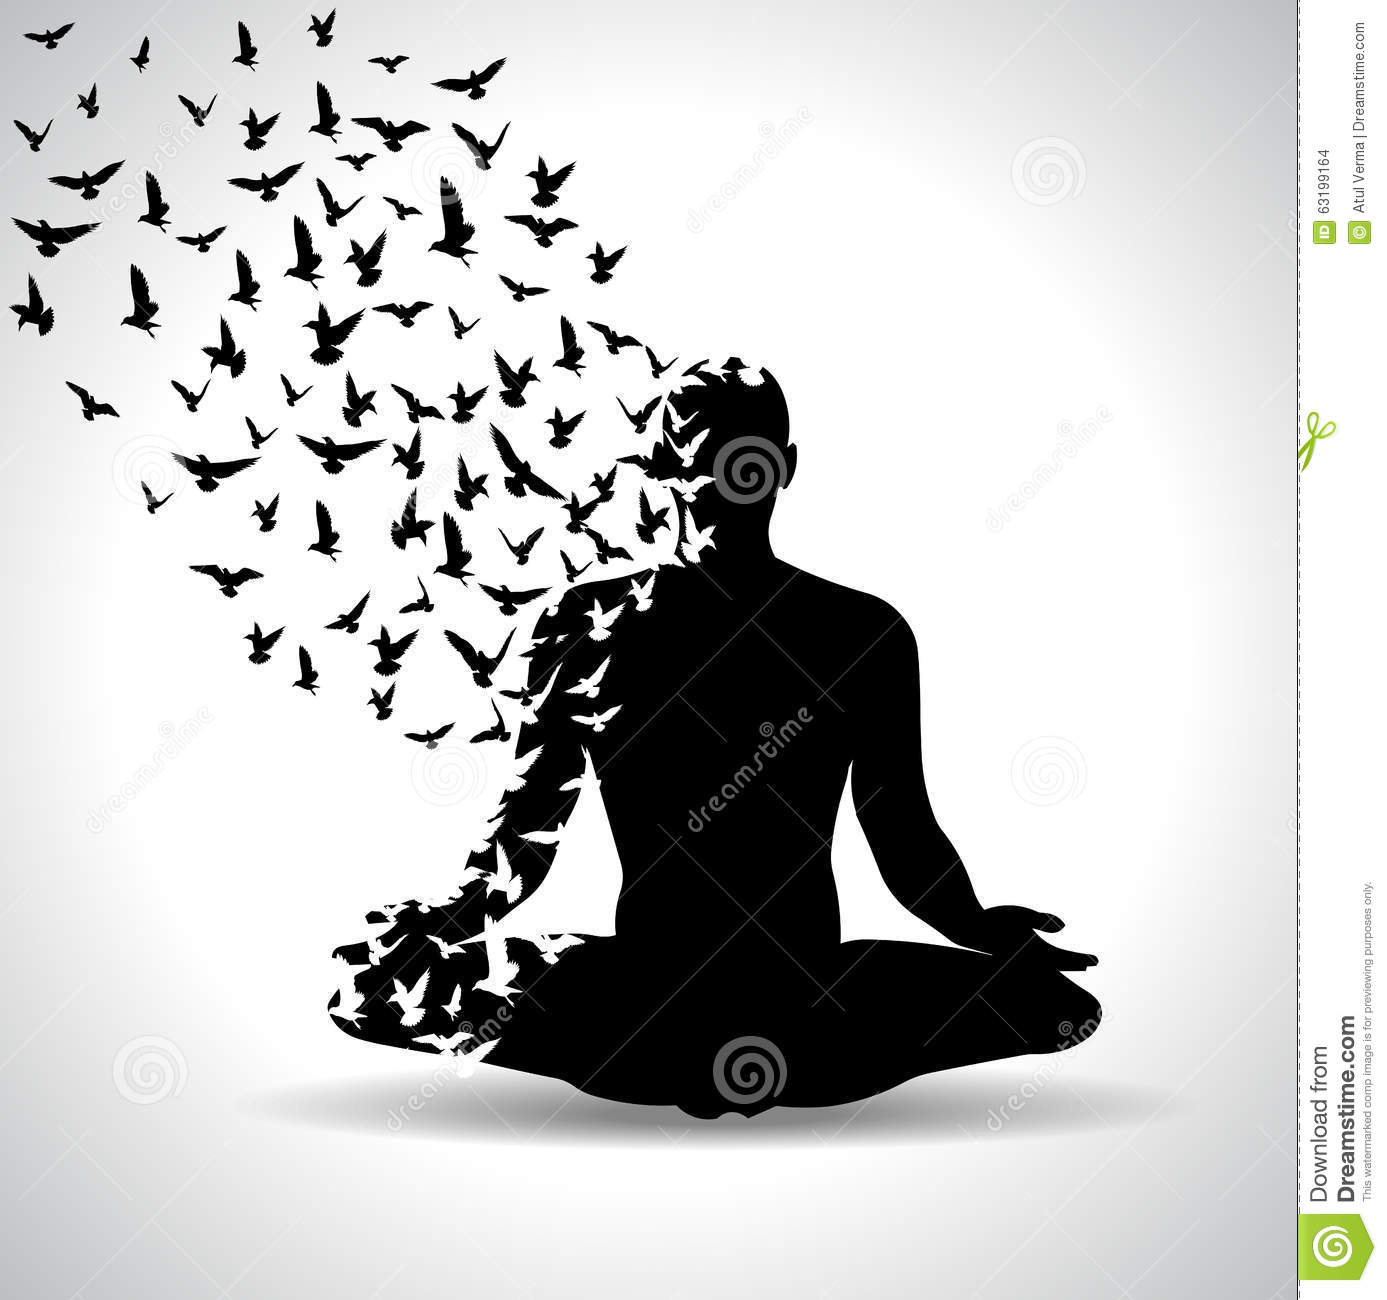 Download Yoga Pose With Birds Flying From Human Body Black And White Poster Stock